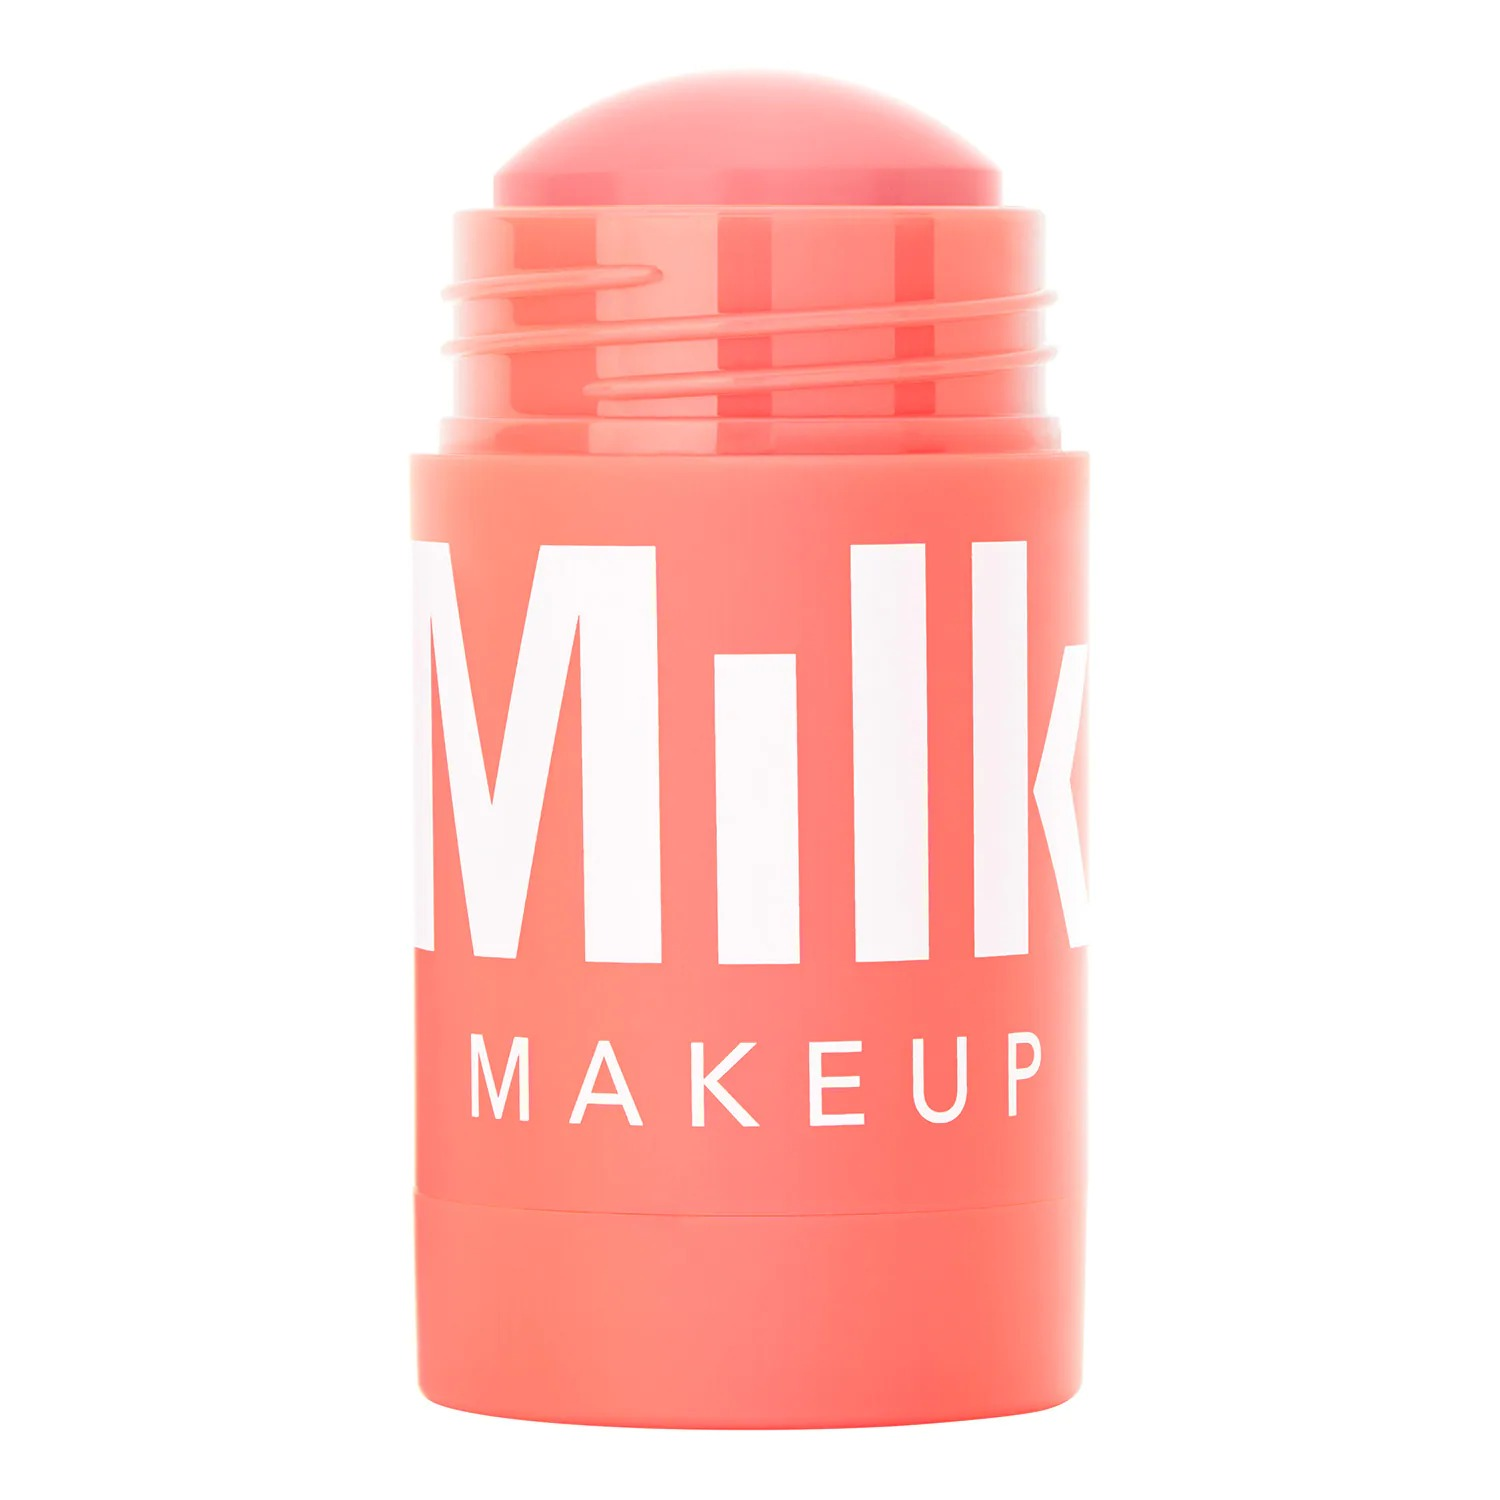 MILK MAKEUP WATERMELON BRIGHTENING FACE MASK MASCARILLA CON EXTRACTO DE SANDÍA